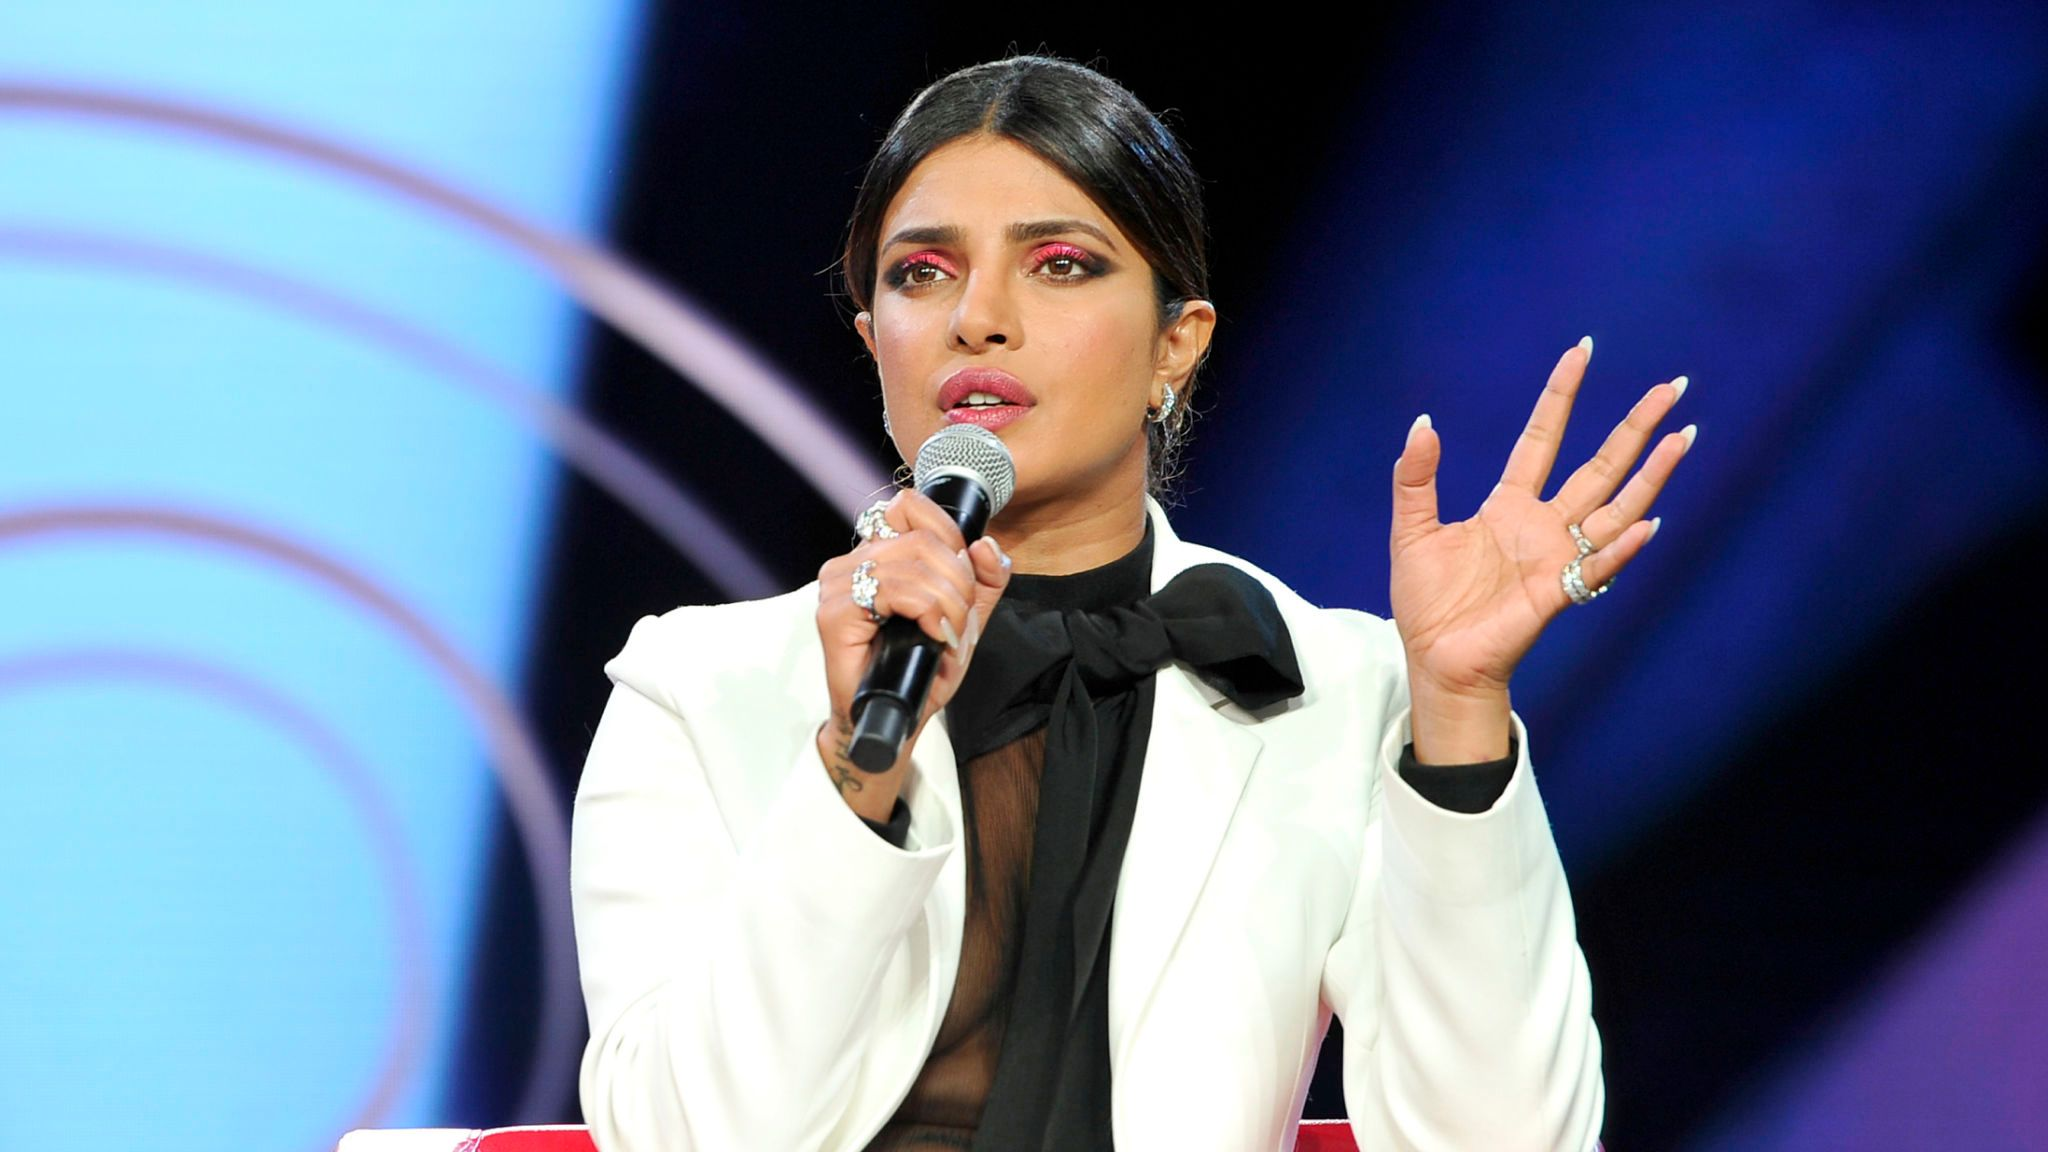 LOS ANGELES, CALIFORNIA - AUGUST 10: Priyanka Chopra attends Beautycon Festival Los Angeles 2019 at Los Angeles Convention Center on August 10, 2019 in Los Angeles, California